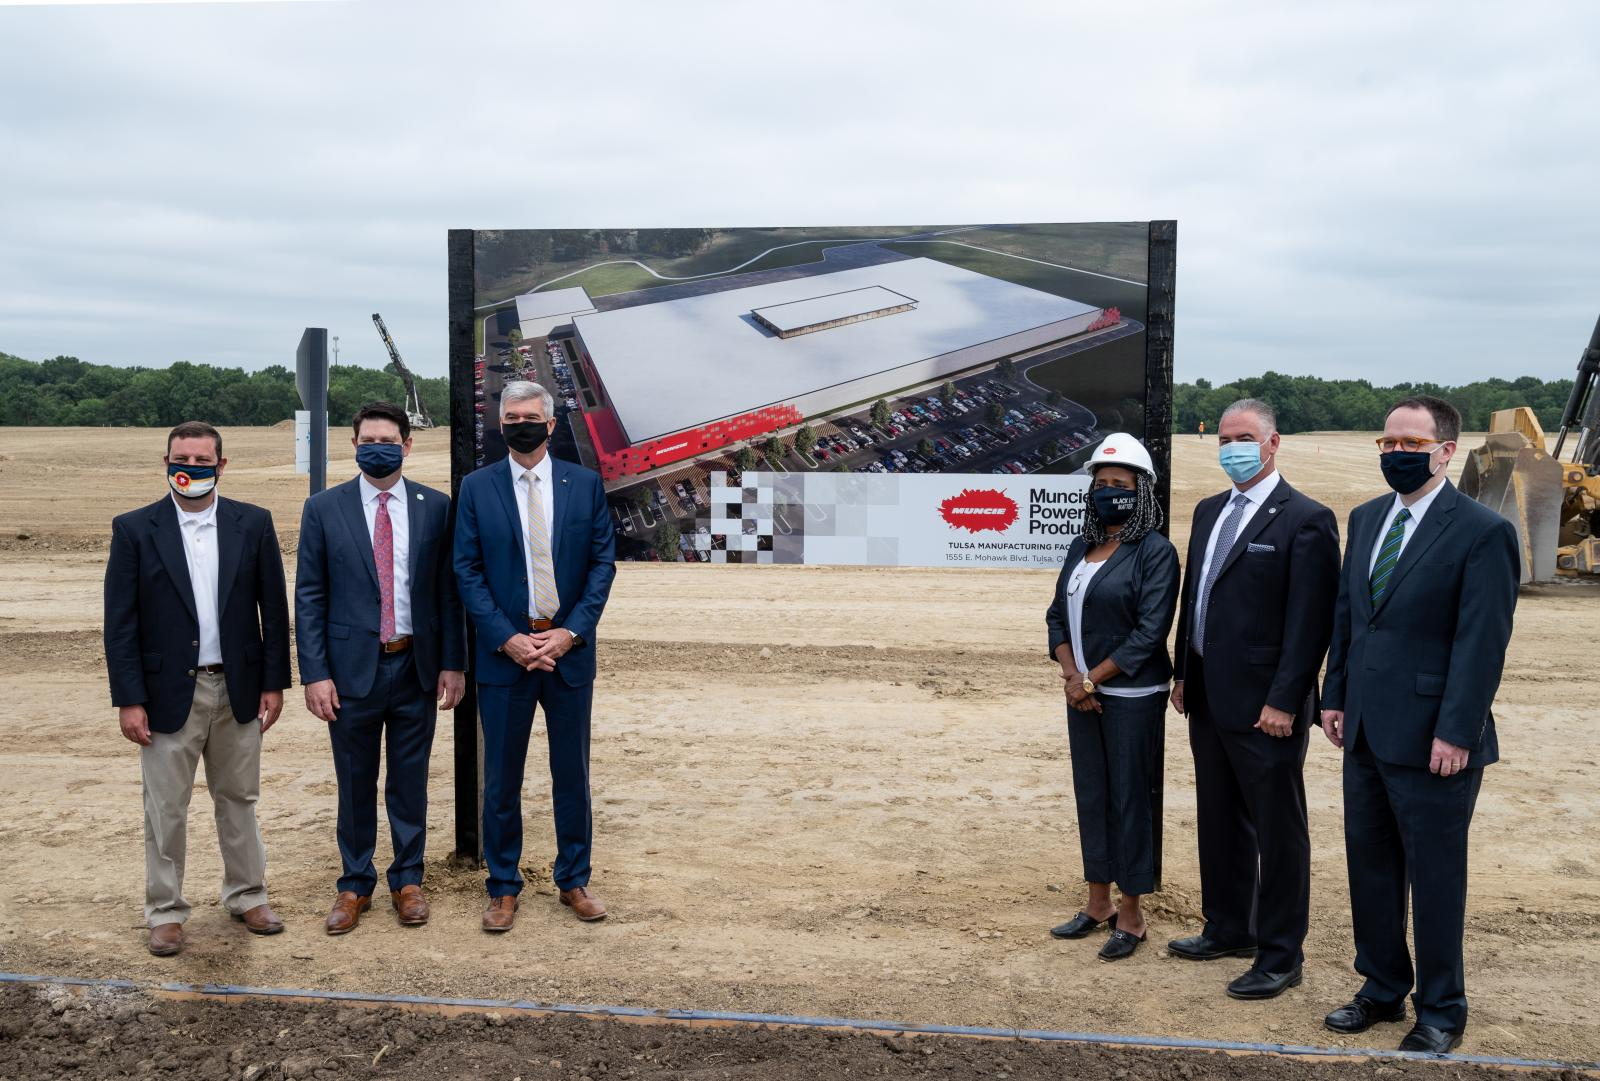 Muncie Power Products breaks ground on new facility Main Photo